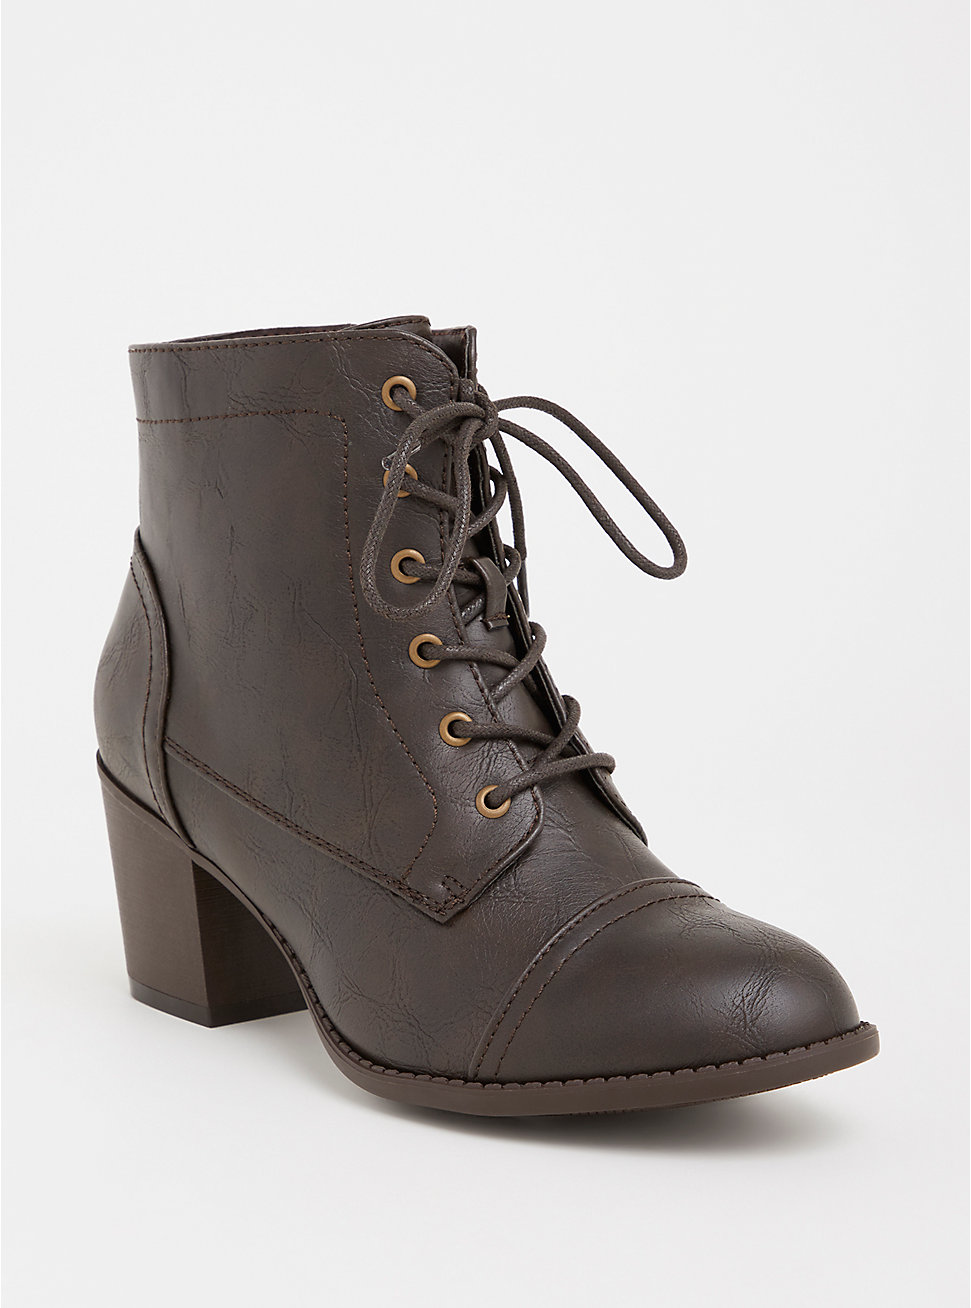 Brown Lace-Up Heel Bootie - Torrid ($64.90 CAD)